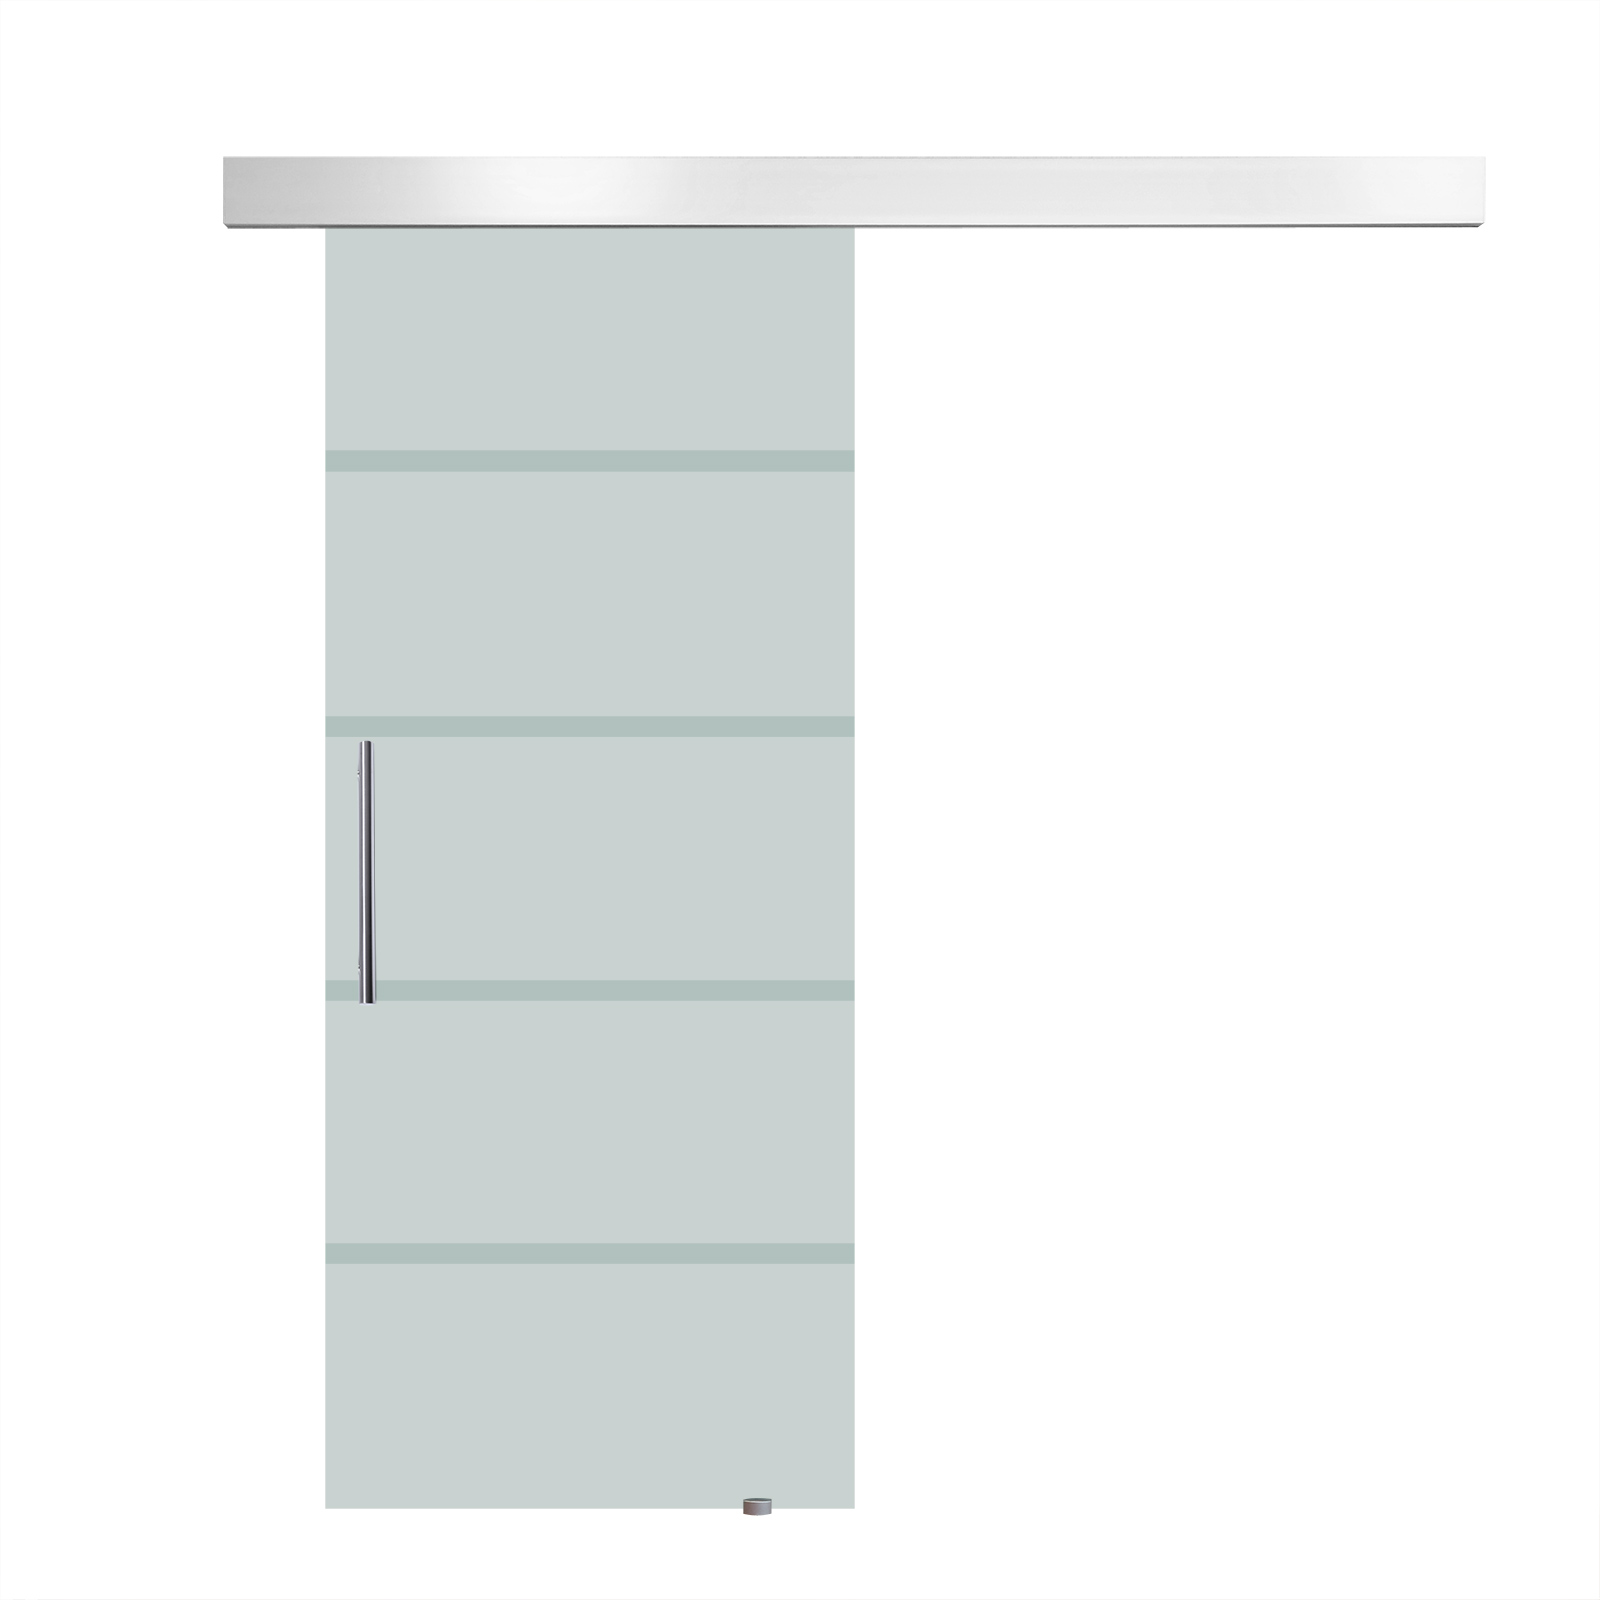 HOMCOM sliding door interior frosted glass with track and handle for bathroom kitchen study 205x77.5x0.8cm image